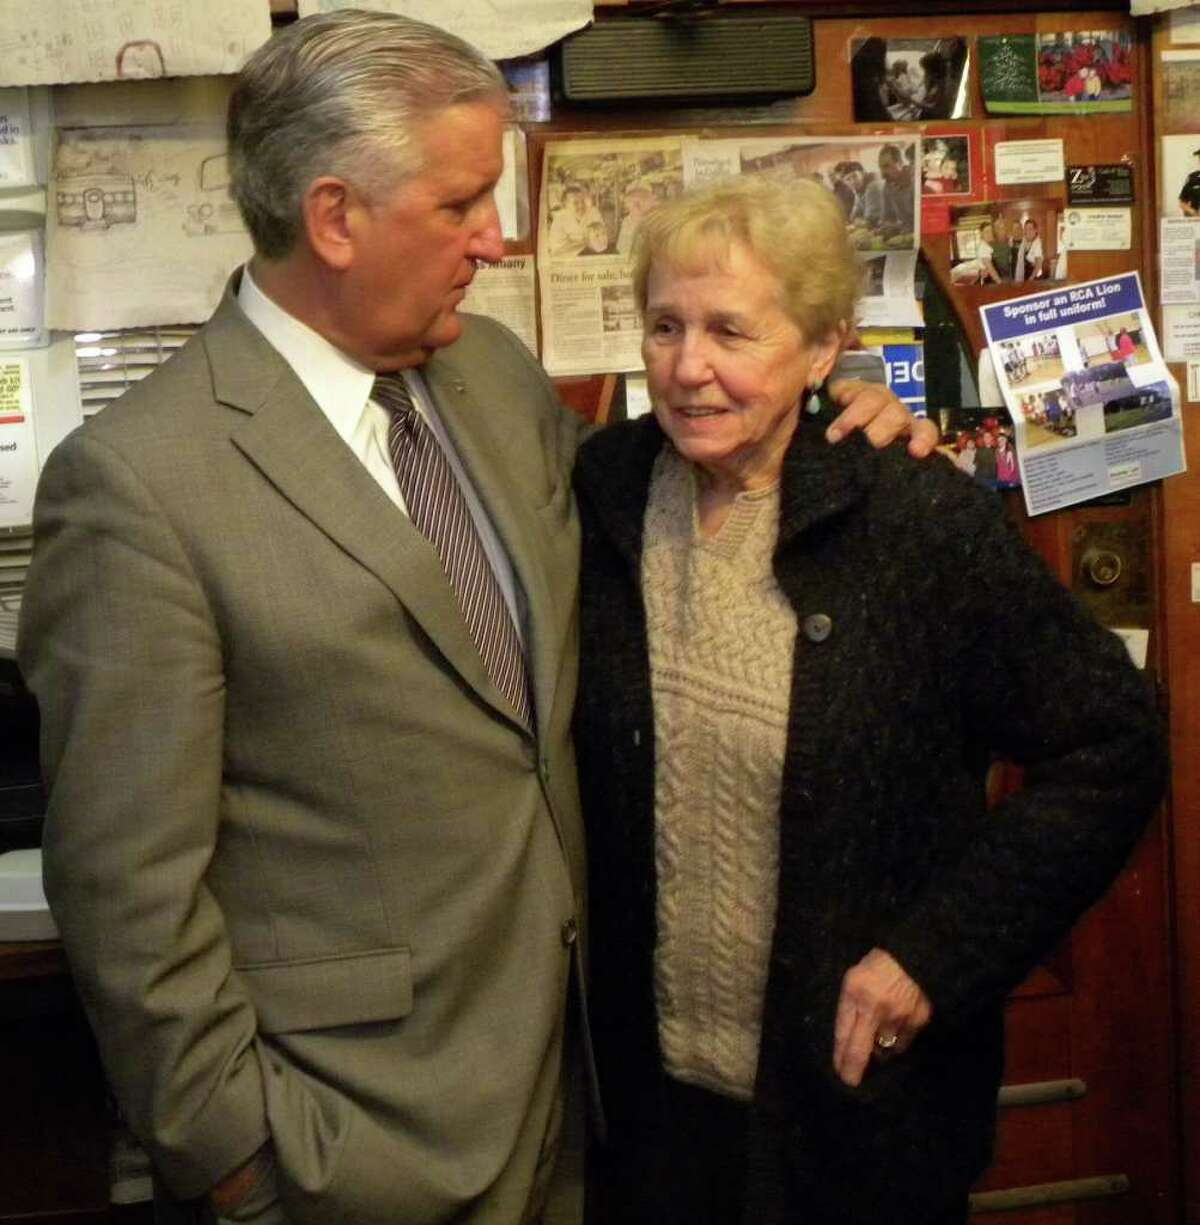 Albany Mayor Jerry Jennings chats with Jane Brown, who recently sold and closed the Miss Albany Diner after more than 23 years in business, during a send-off reception Thursday night, Feb. 16, at the diner. Brown, who is retiring, said she plans to write a cookbook with the diner's recipes. (Steve Barnes/Times Union)